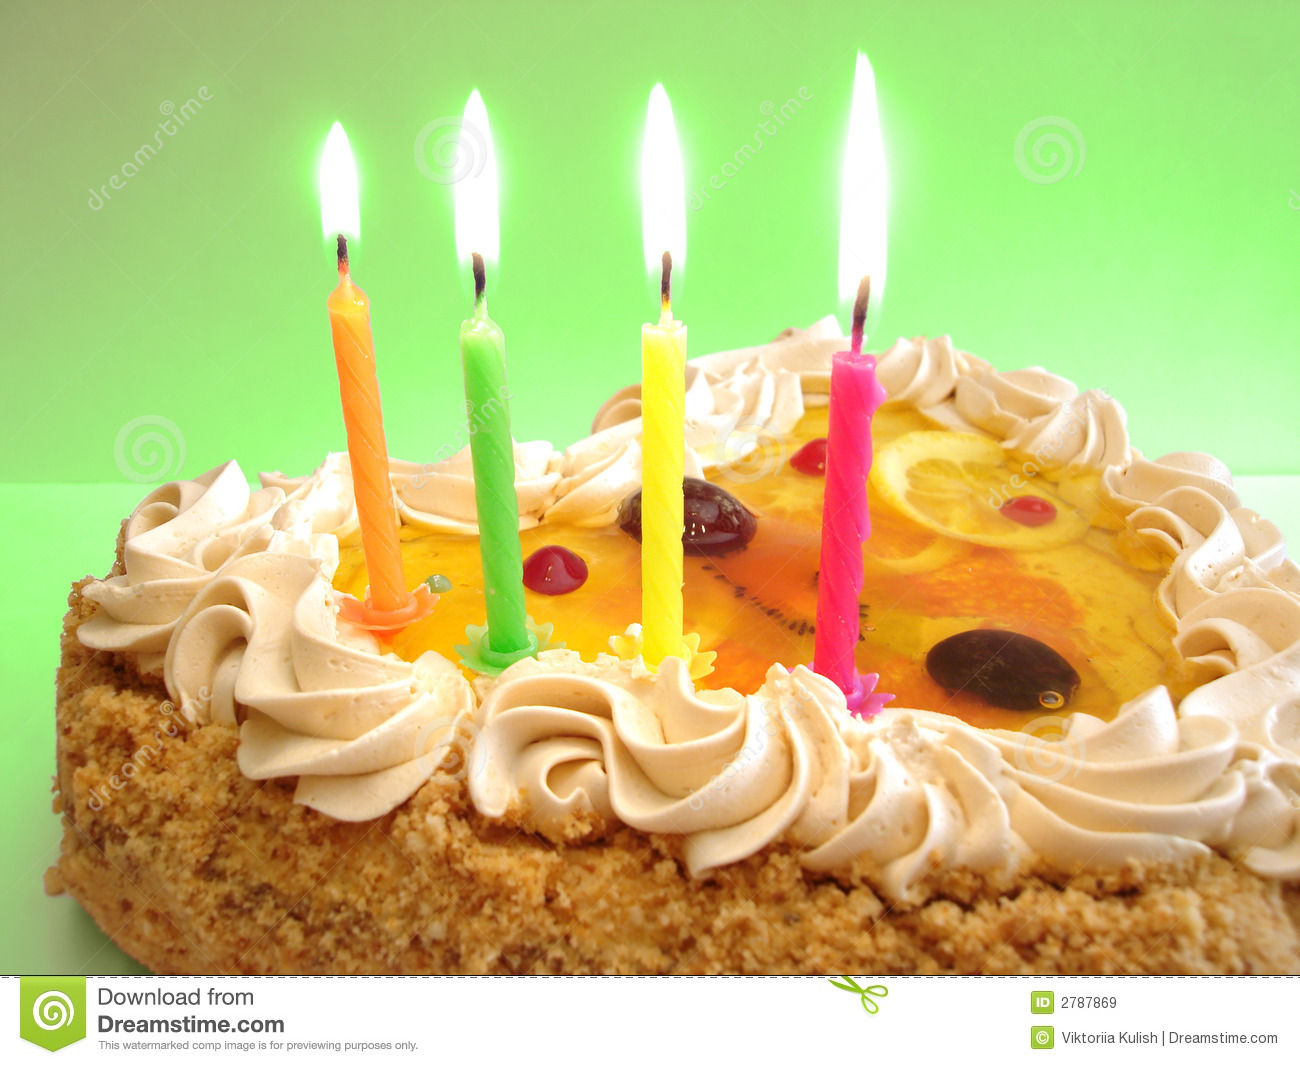 Birthday Cake Images With Candles Free : Birthday Cake And Candles Royalty Free Stock Images ...